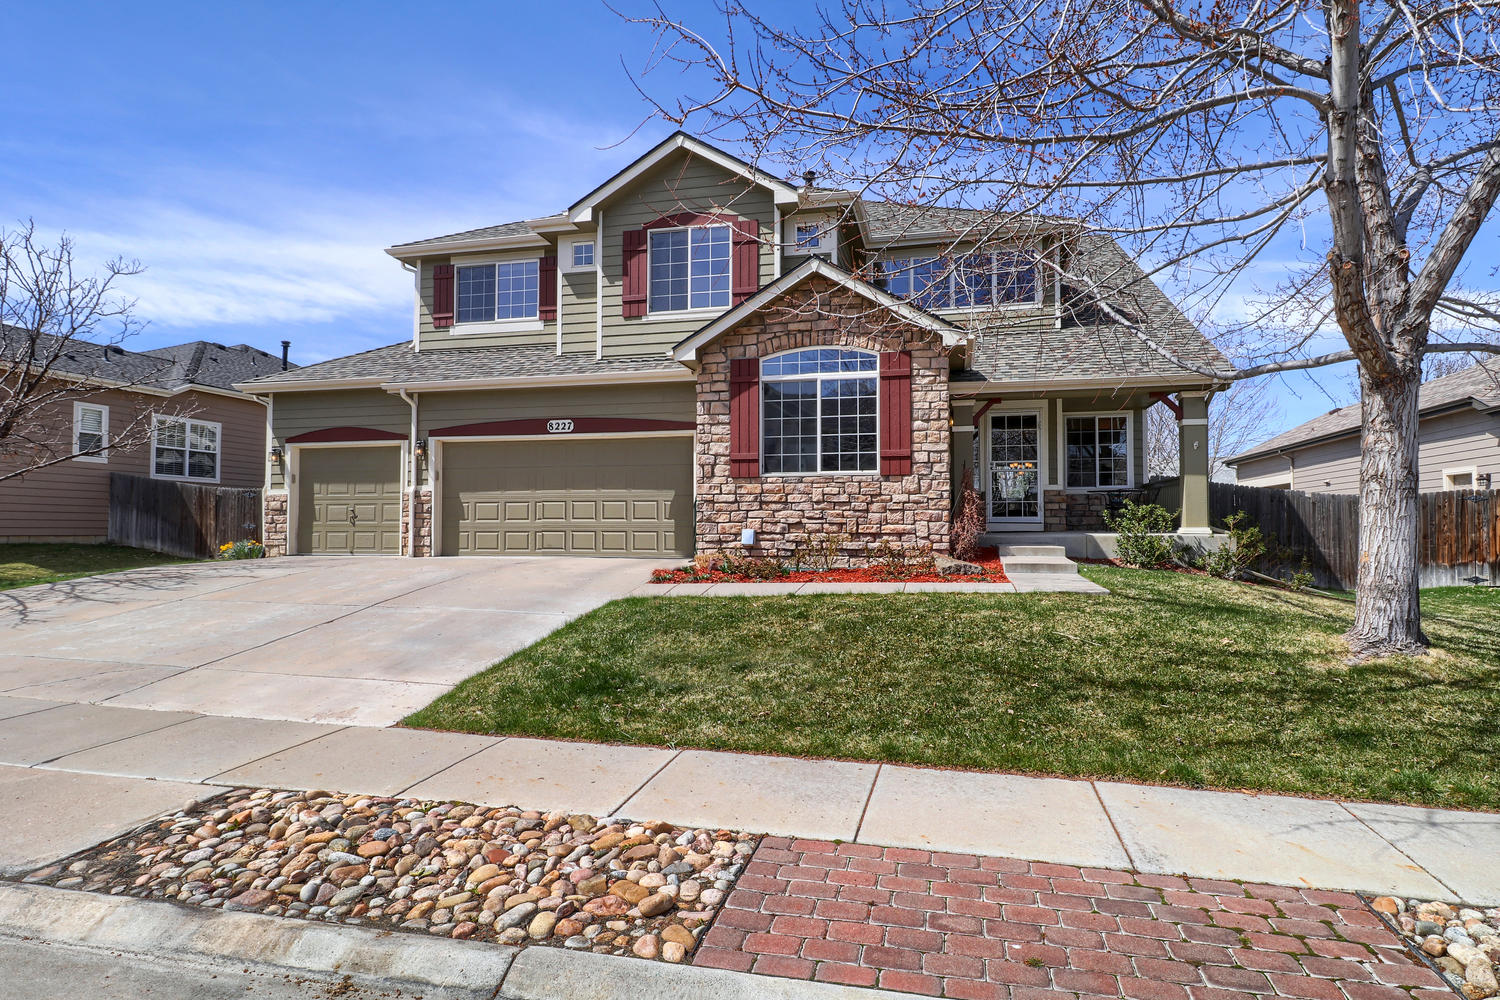 8227 Swadley Ct Arvada CO-large-011-16-Front-1500x1000-72dpi.jpg